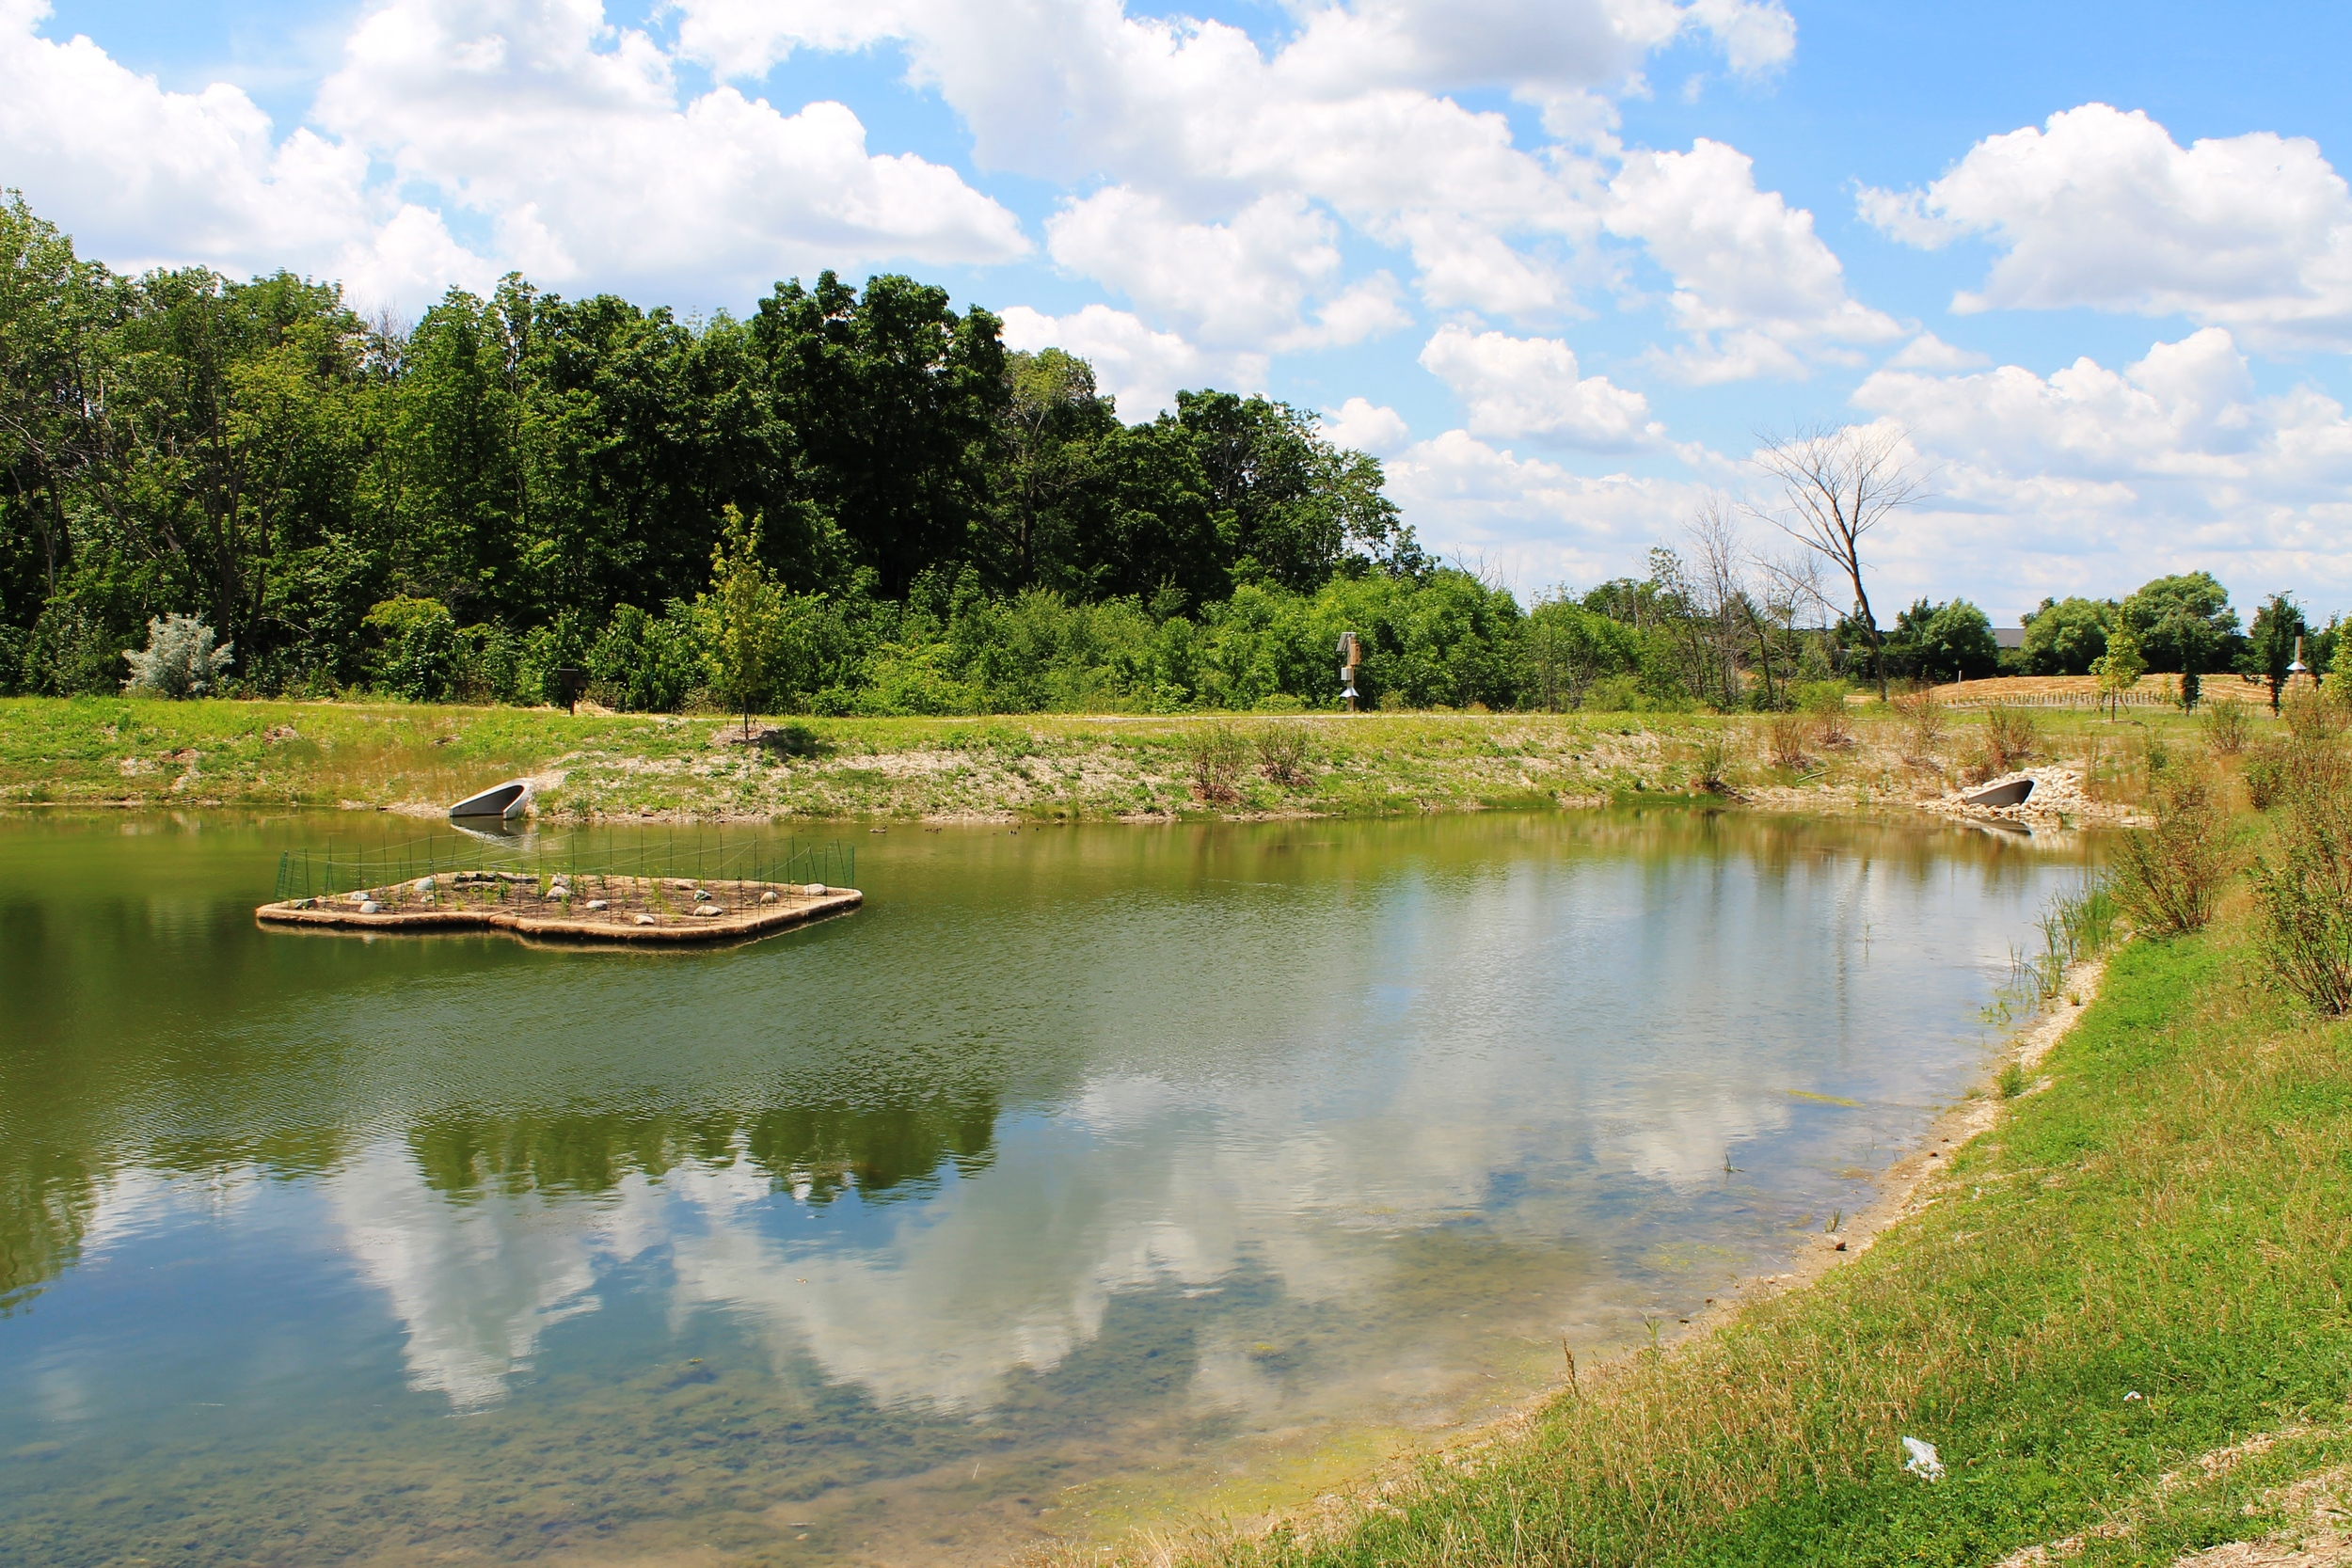 Pollution Reducing Floating Islands - Oak Creek's Drexel Commons